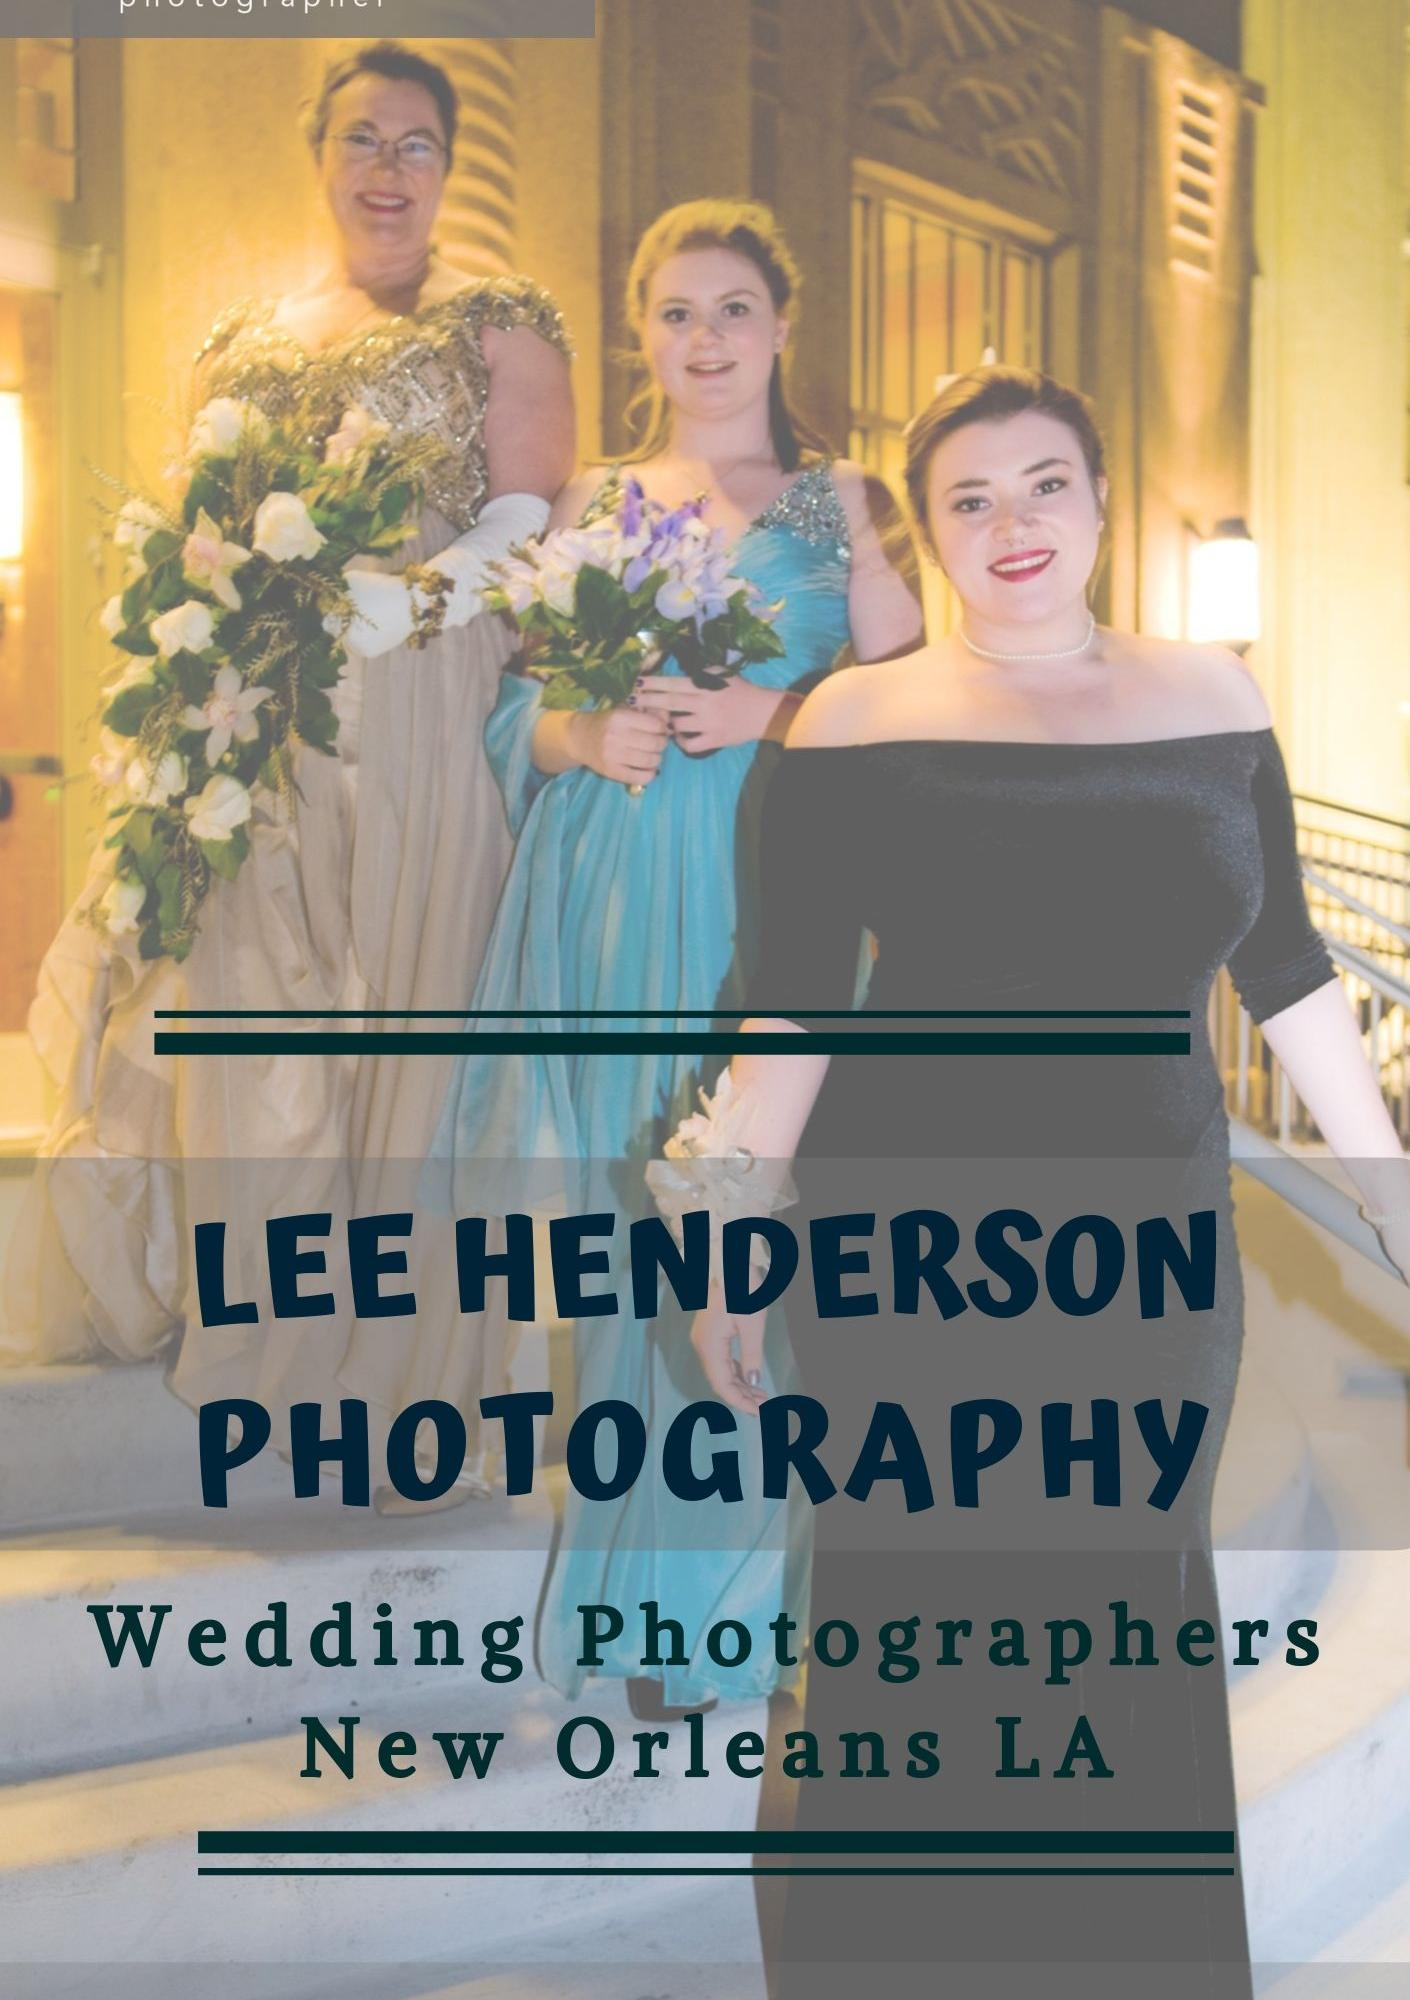 Lee Henderson Photography